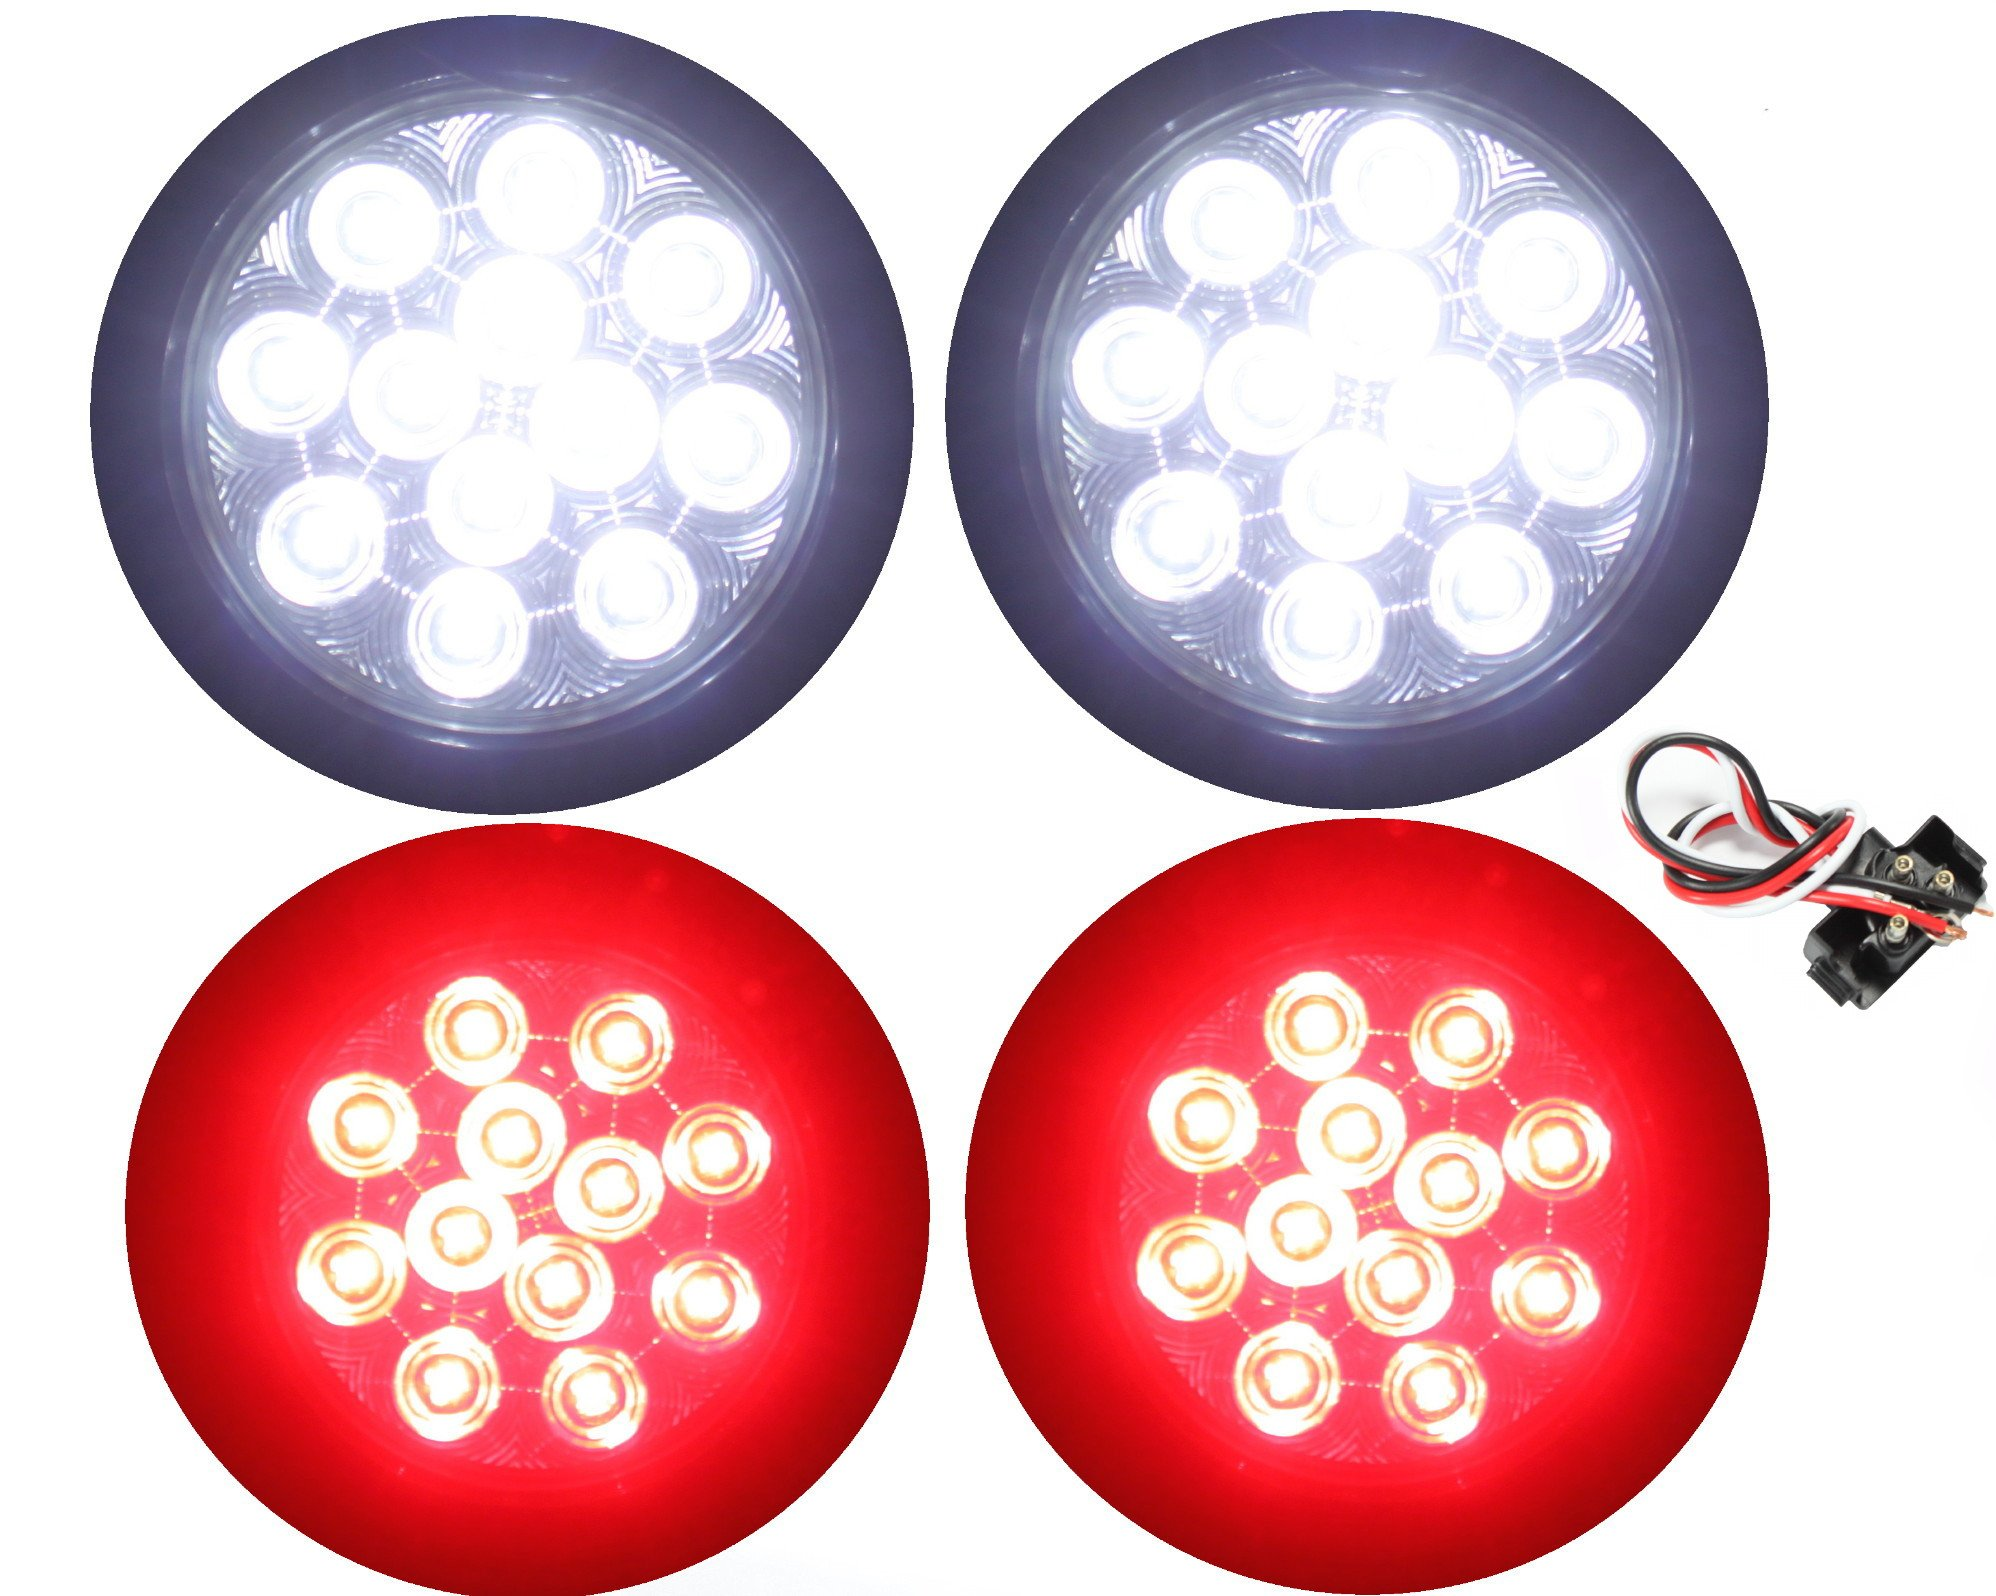 512d705e4a ... Reverse Fog Lights Include Lights Grommet Plug for Truck Trailer RV.  39.99. null. Get Quotations · 2 Clear Lens Red + 2 White 4